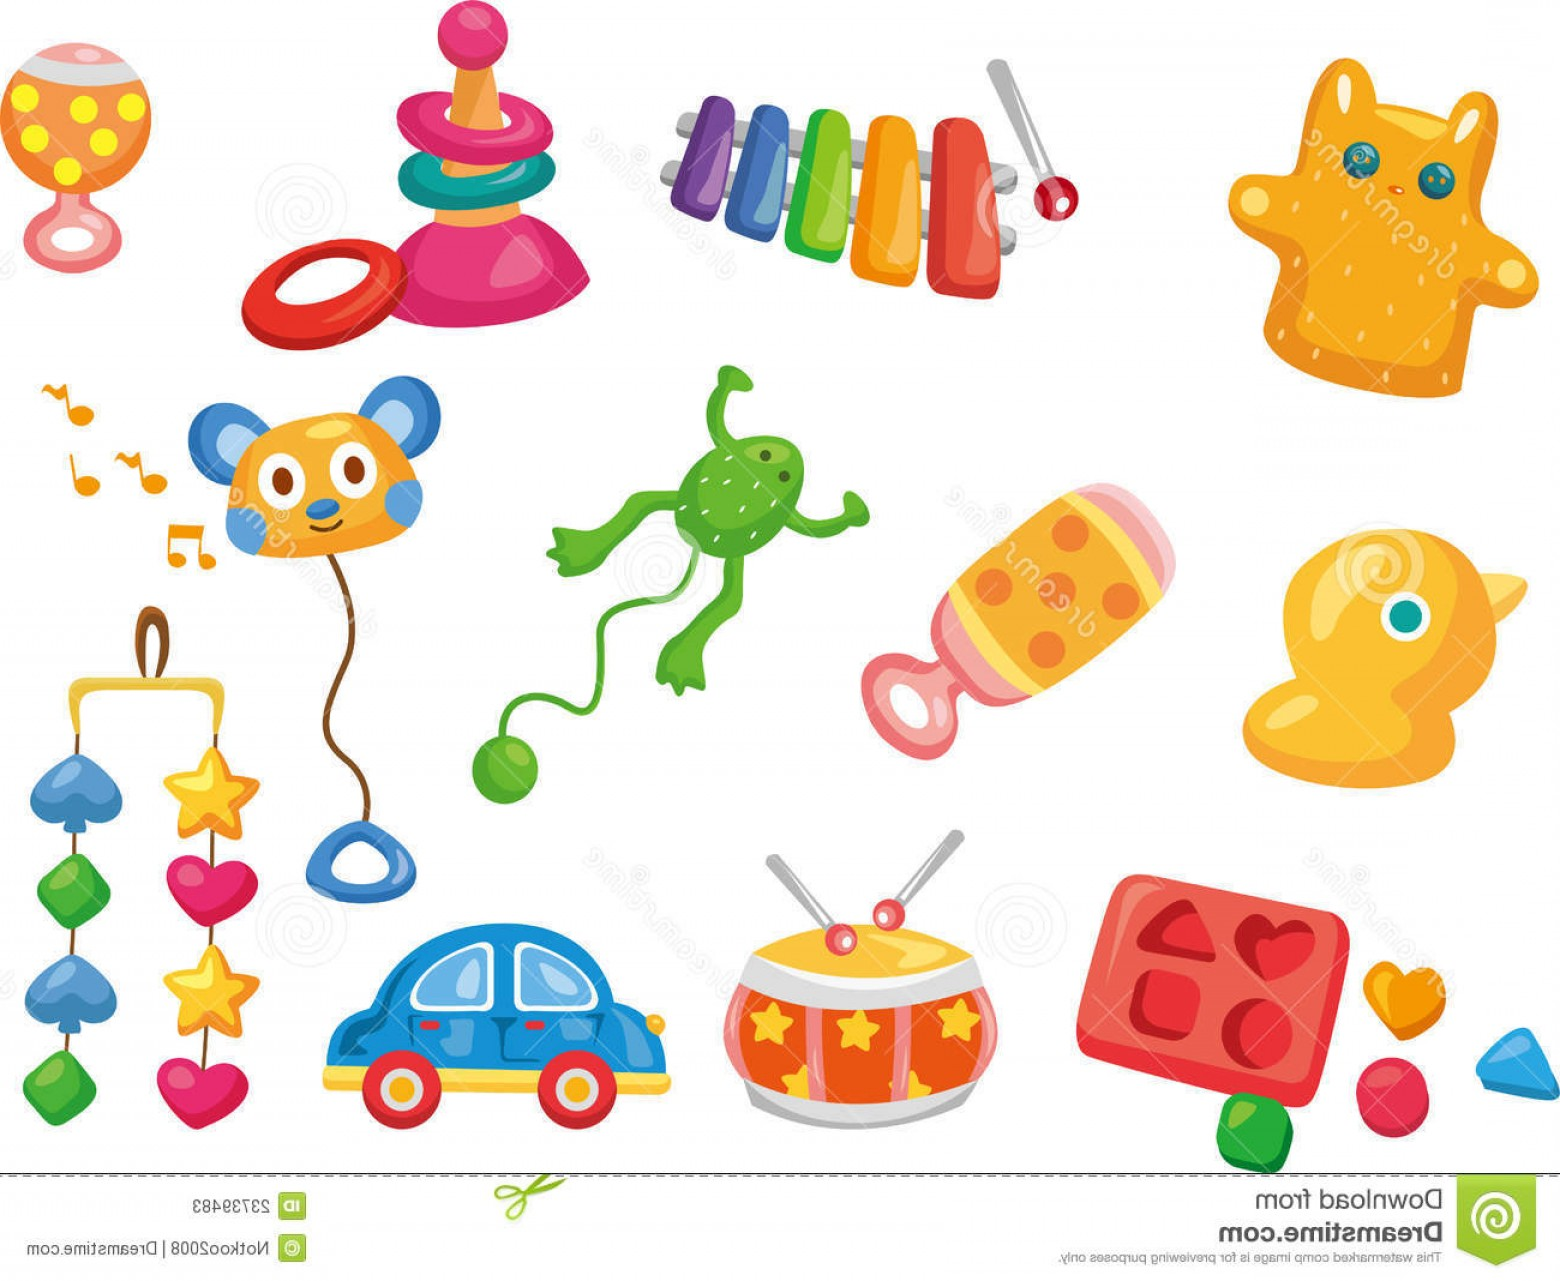 Baby Toy Vector: Stock Photos Vector Toy Icons Baby Toys Image